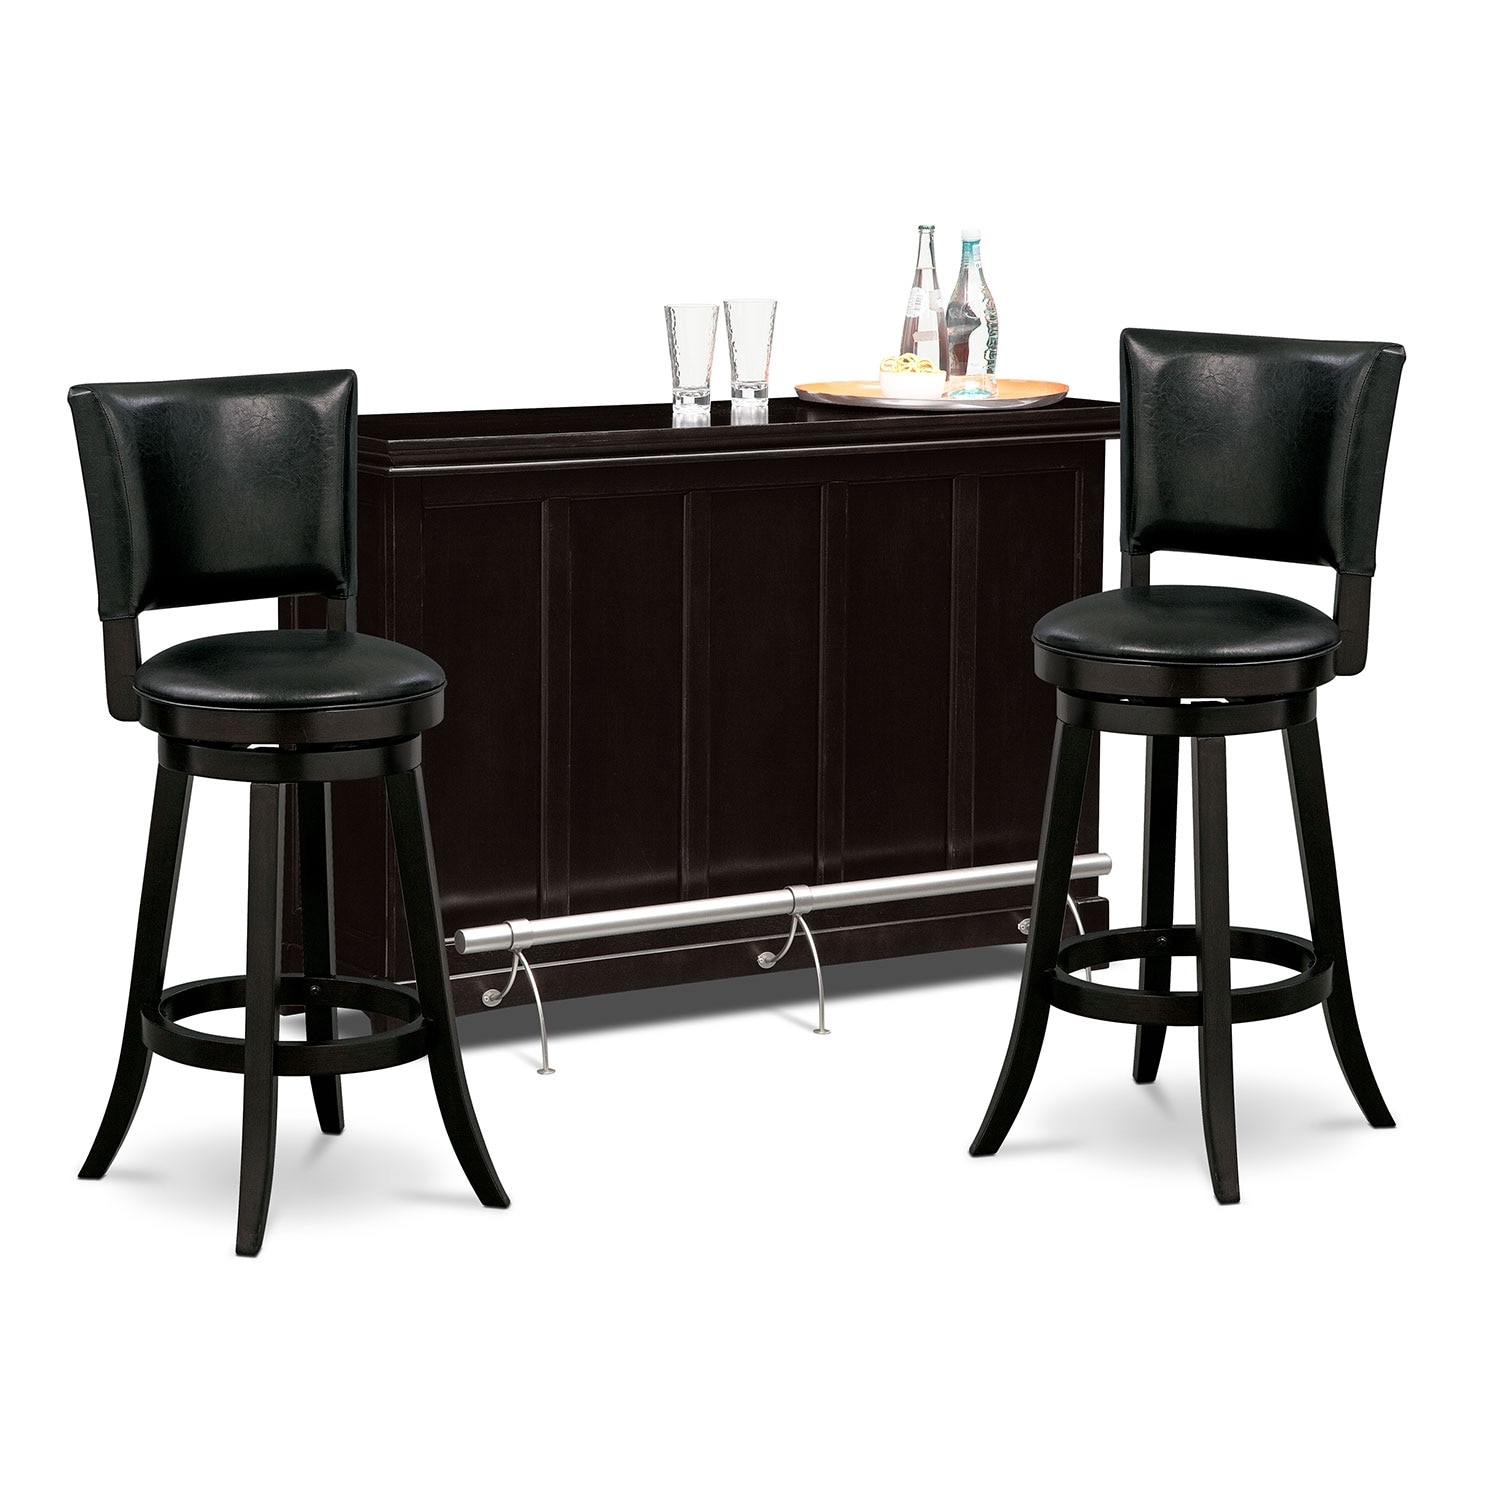 Accent and Occasional Furniture - Carlton II Easton 3 Pc. Bar Set